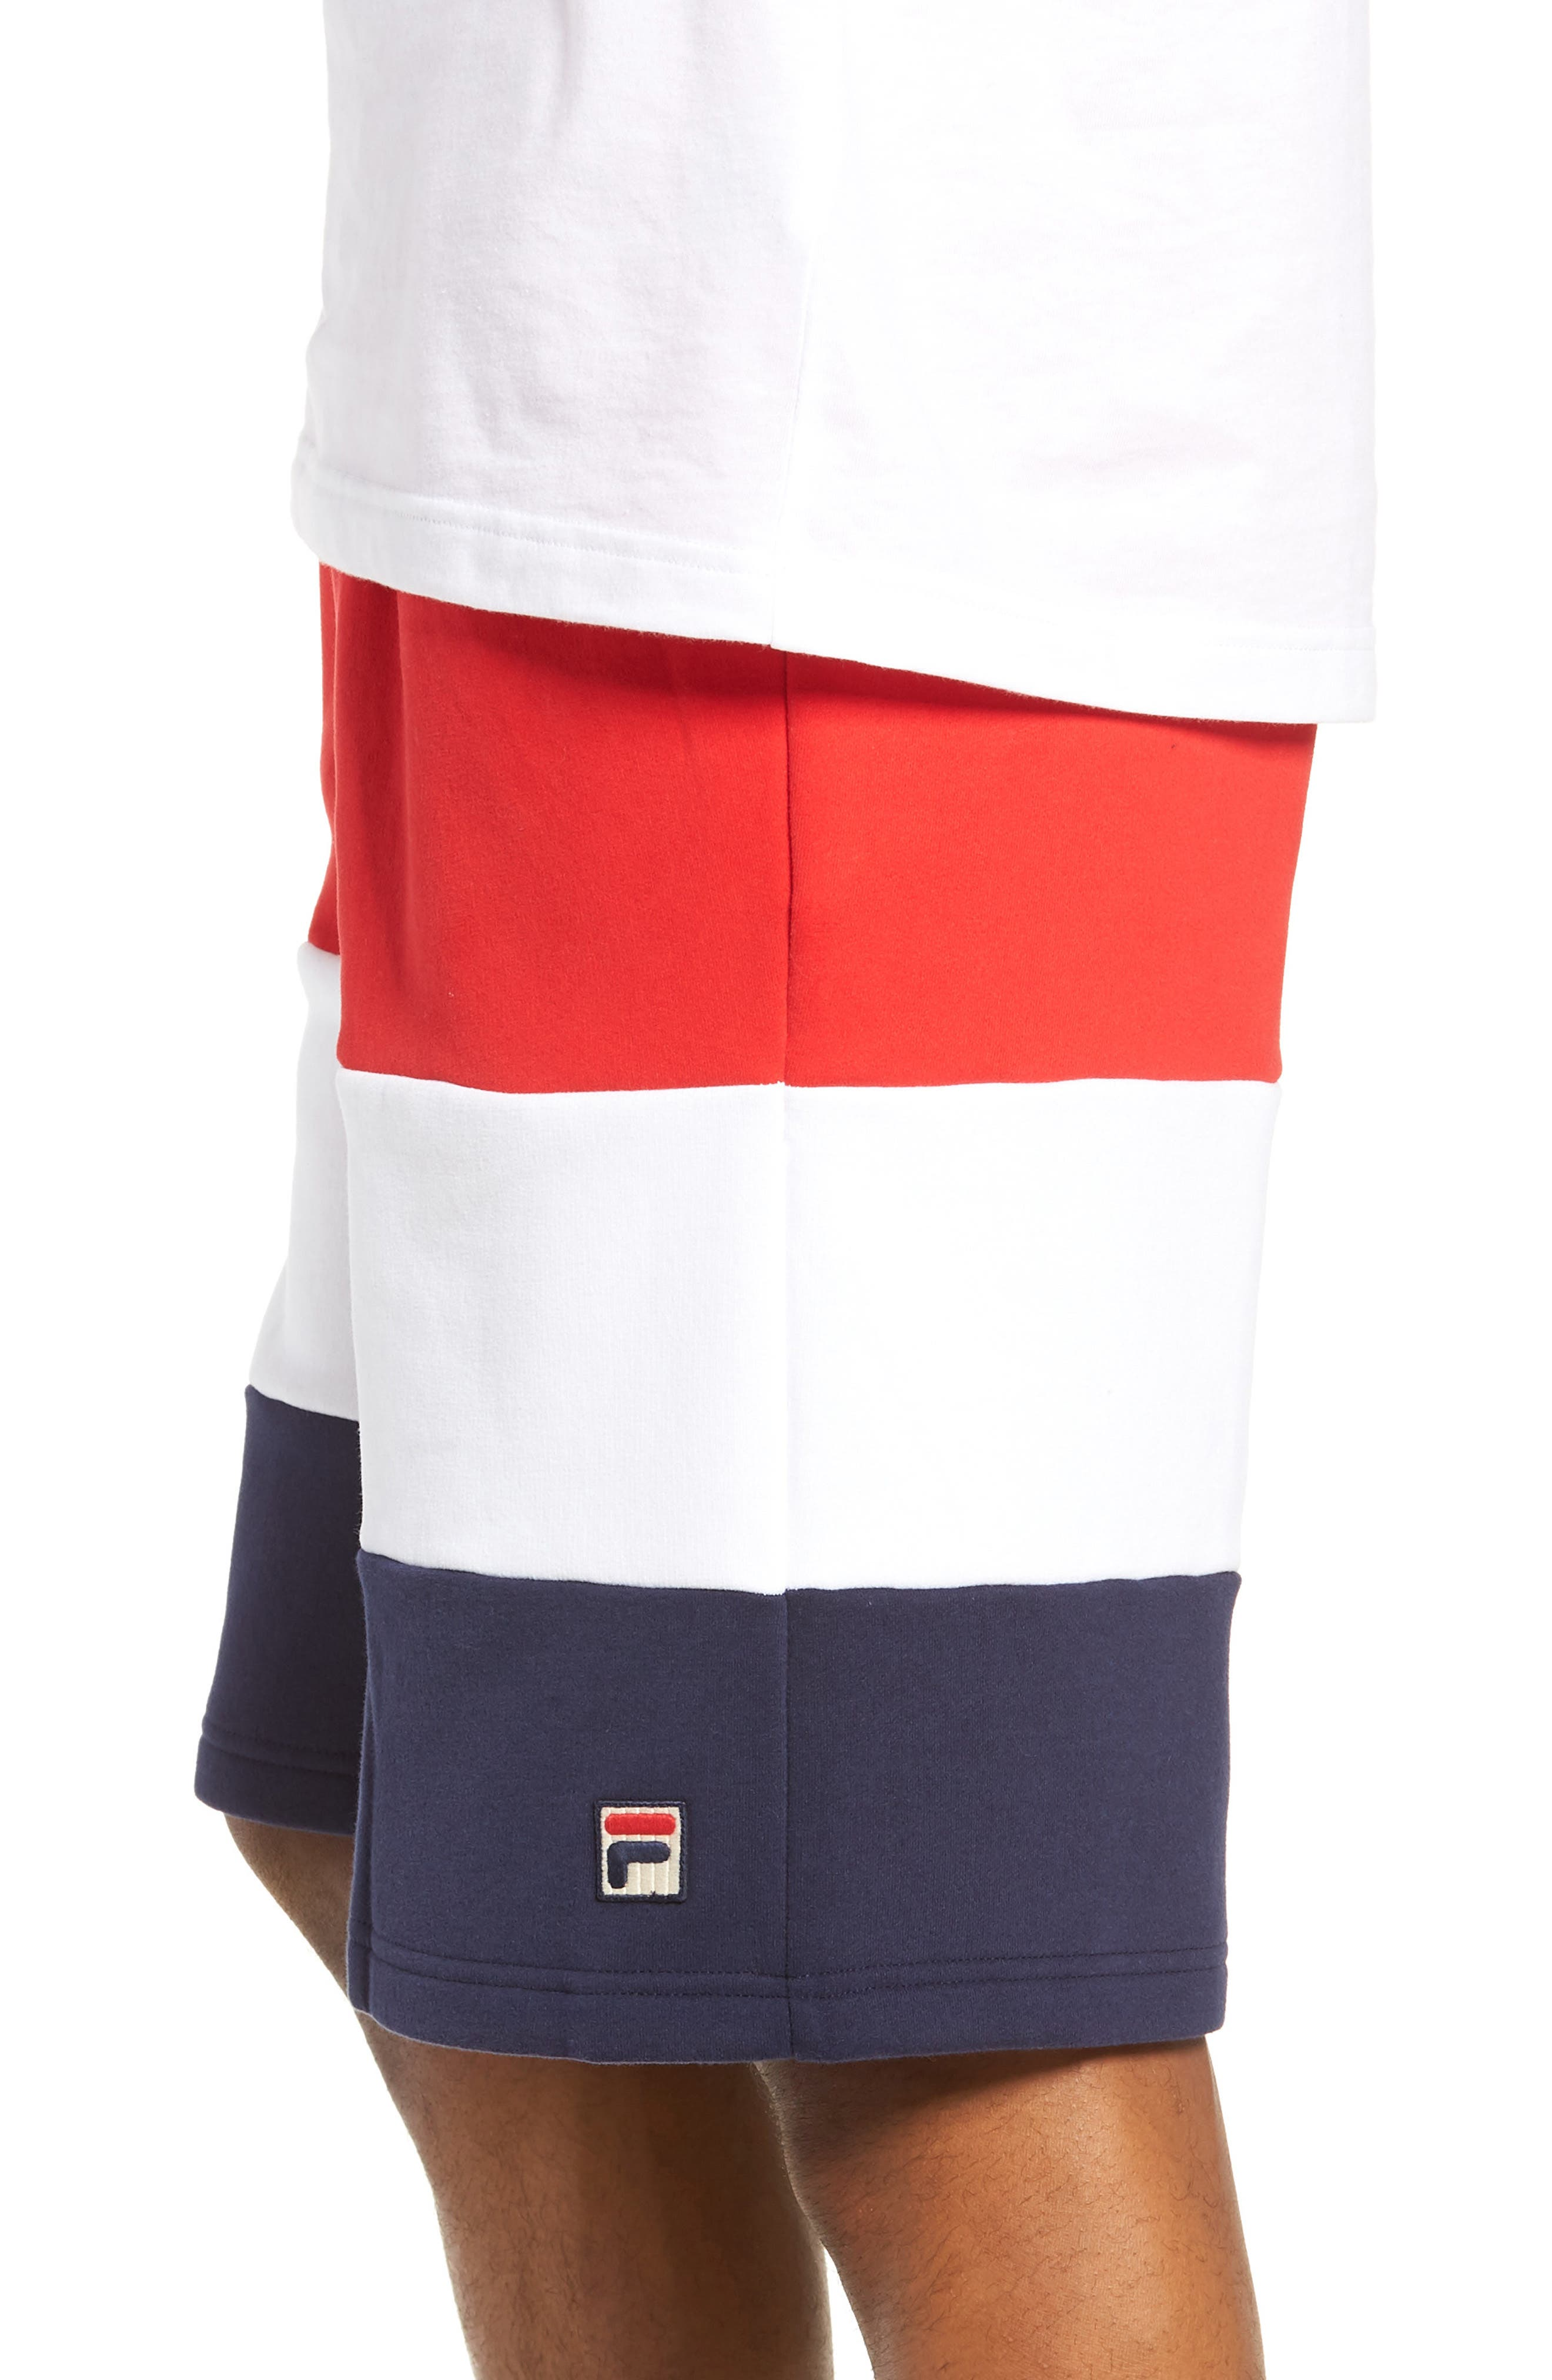 Alanzo Shorts,                             Alternate thumbnail 3, color,                             CHINESE RED/ WHITE/ NAVY